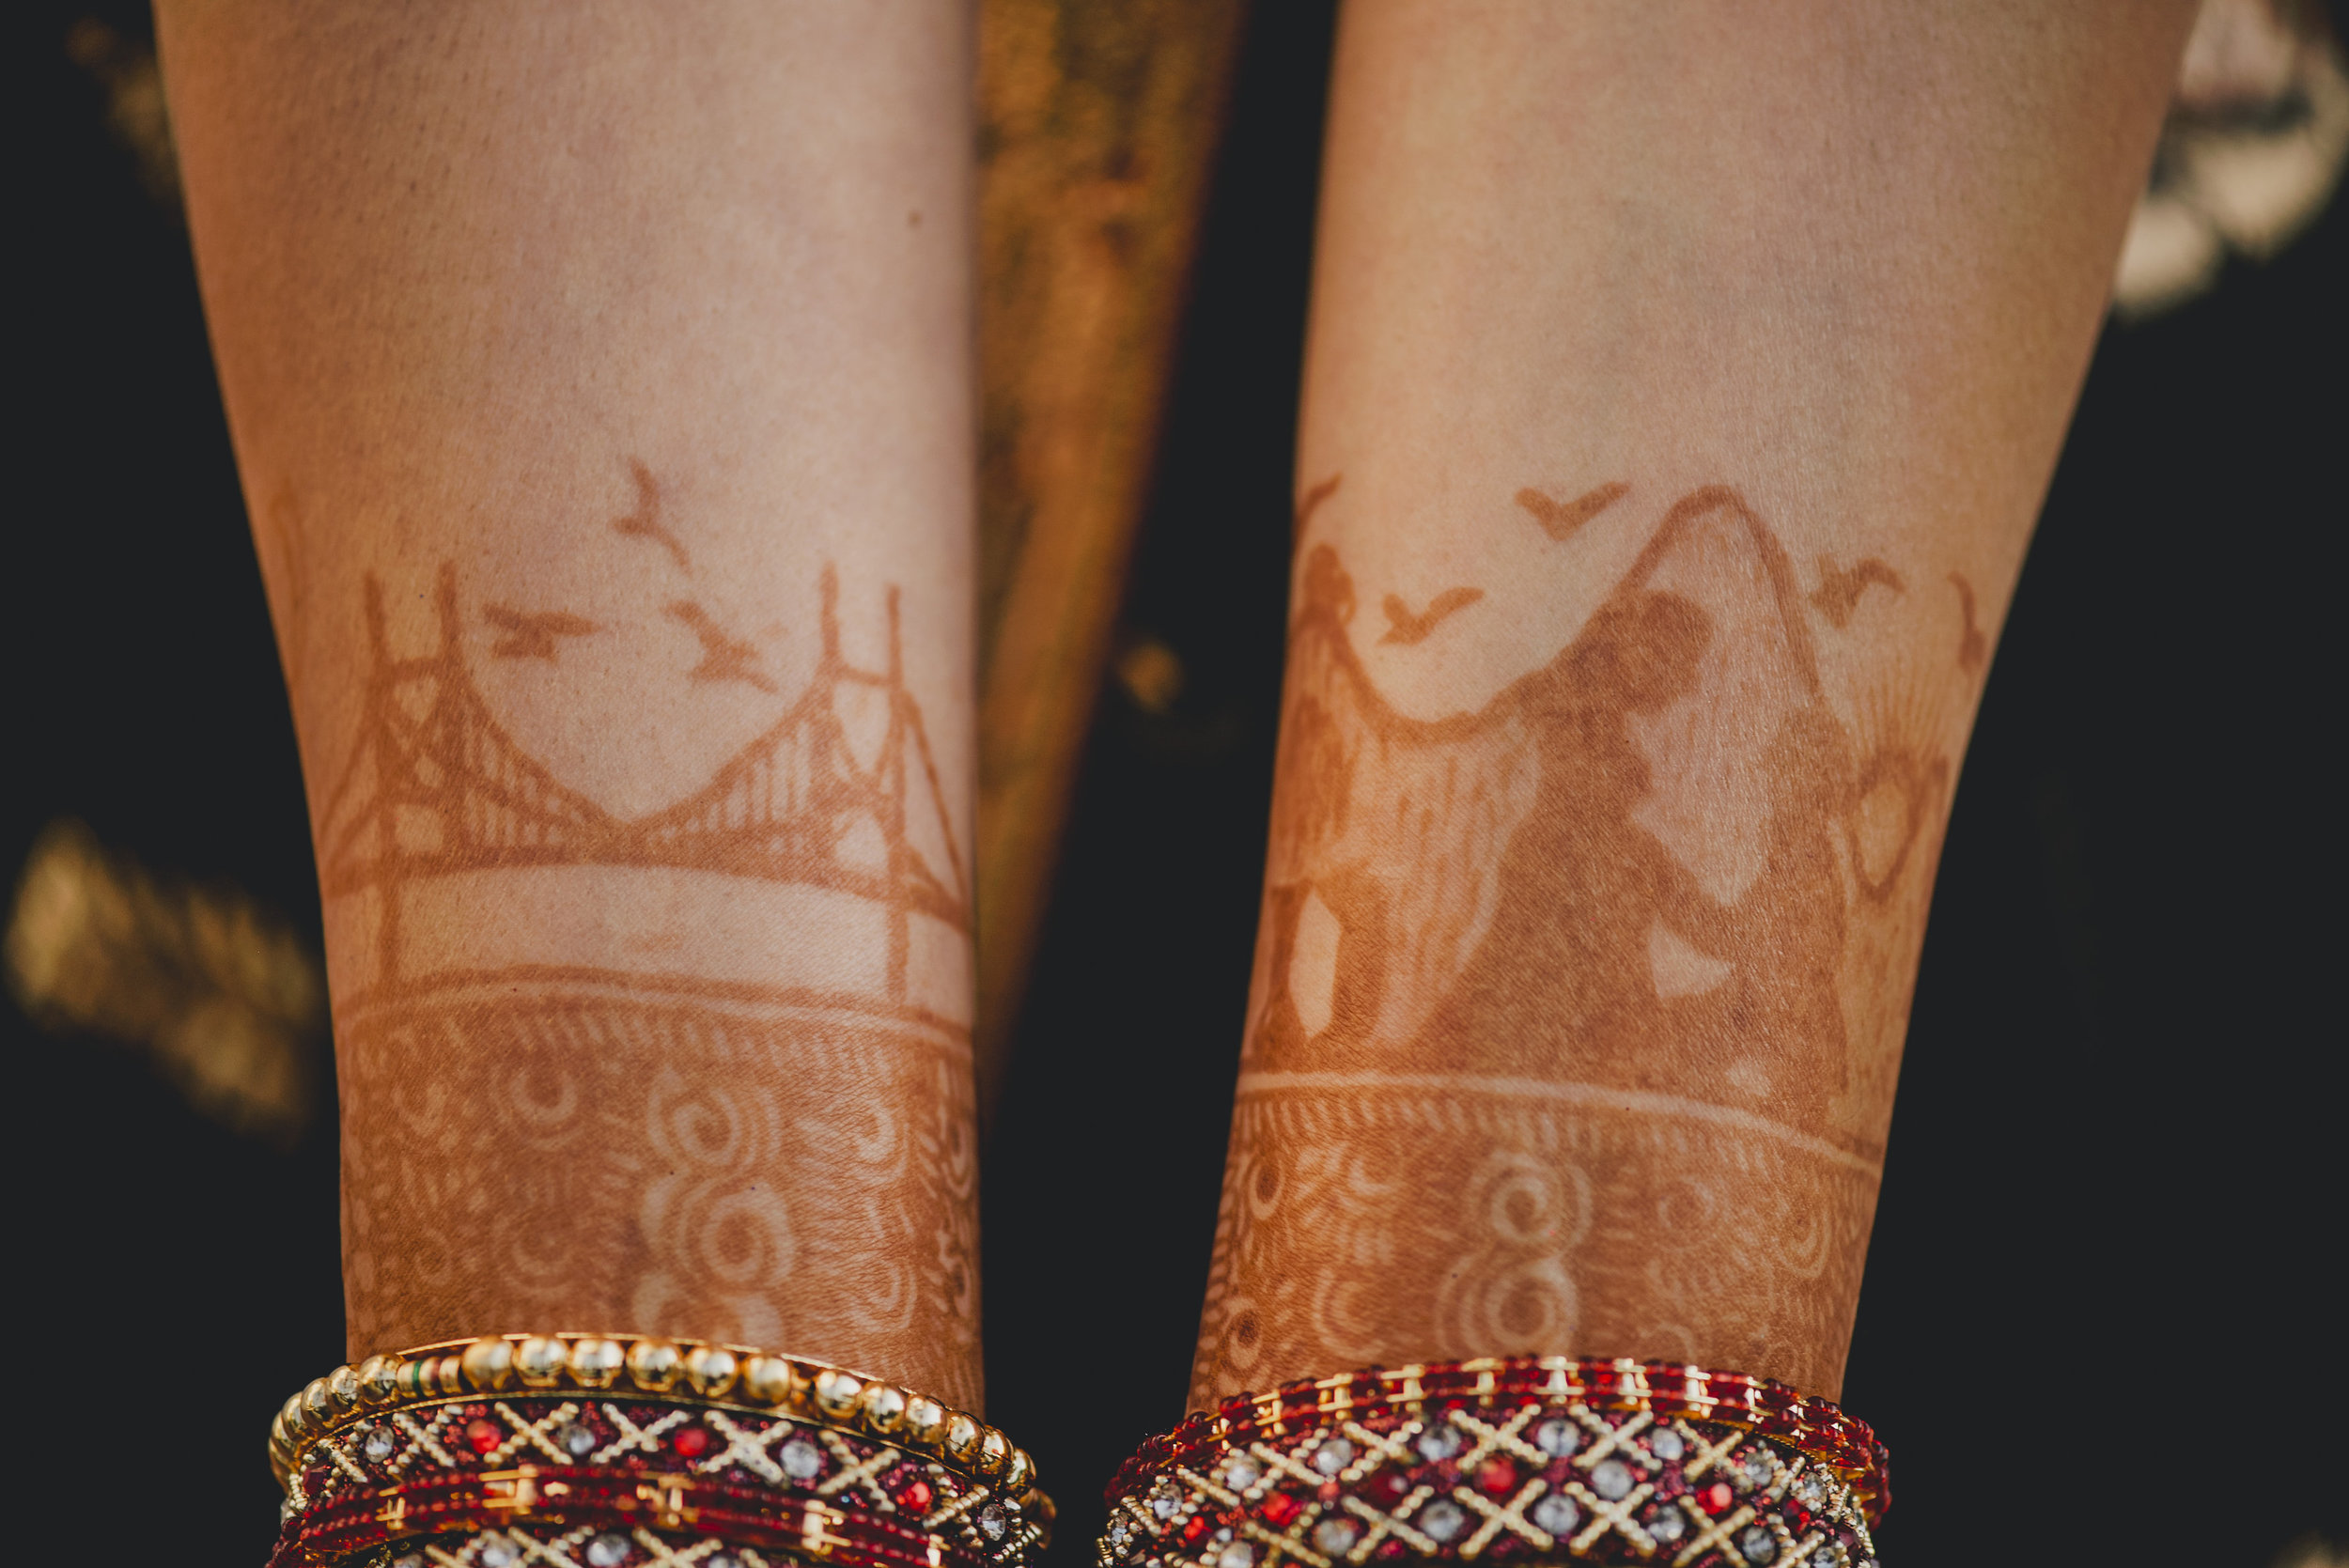 Can you find all of the designs in the mehndi?